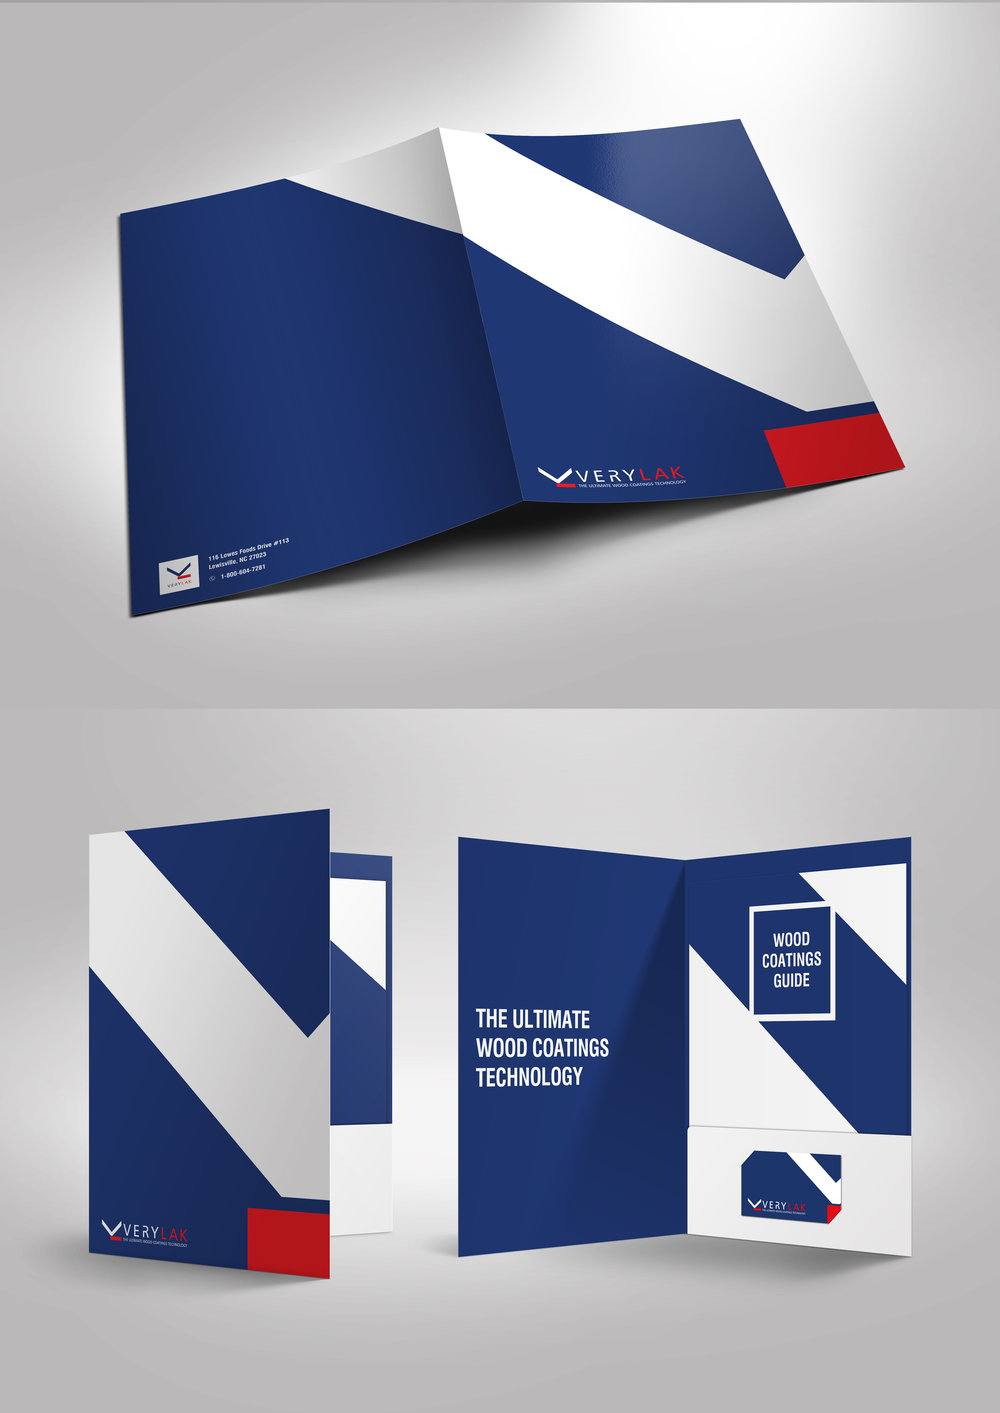 Presentation_Folder_Mockup_Verylak-v2_3.jpg